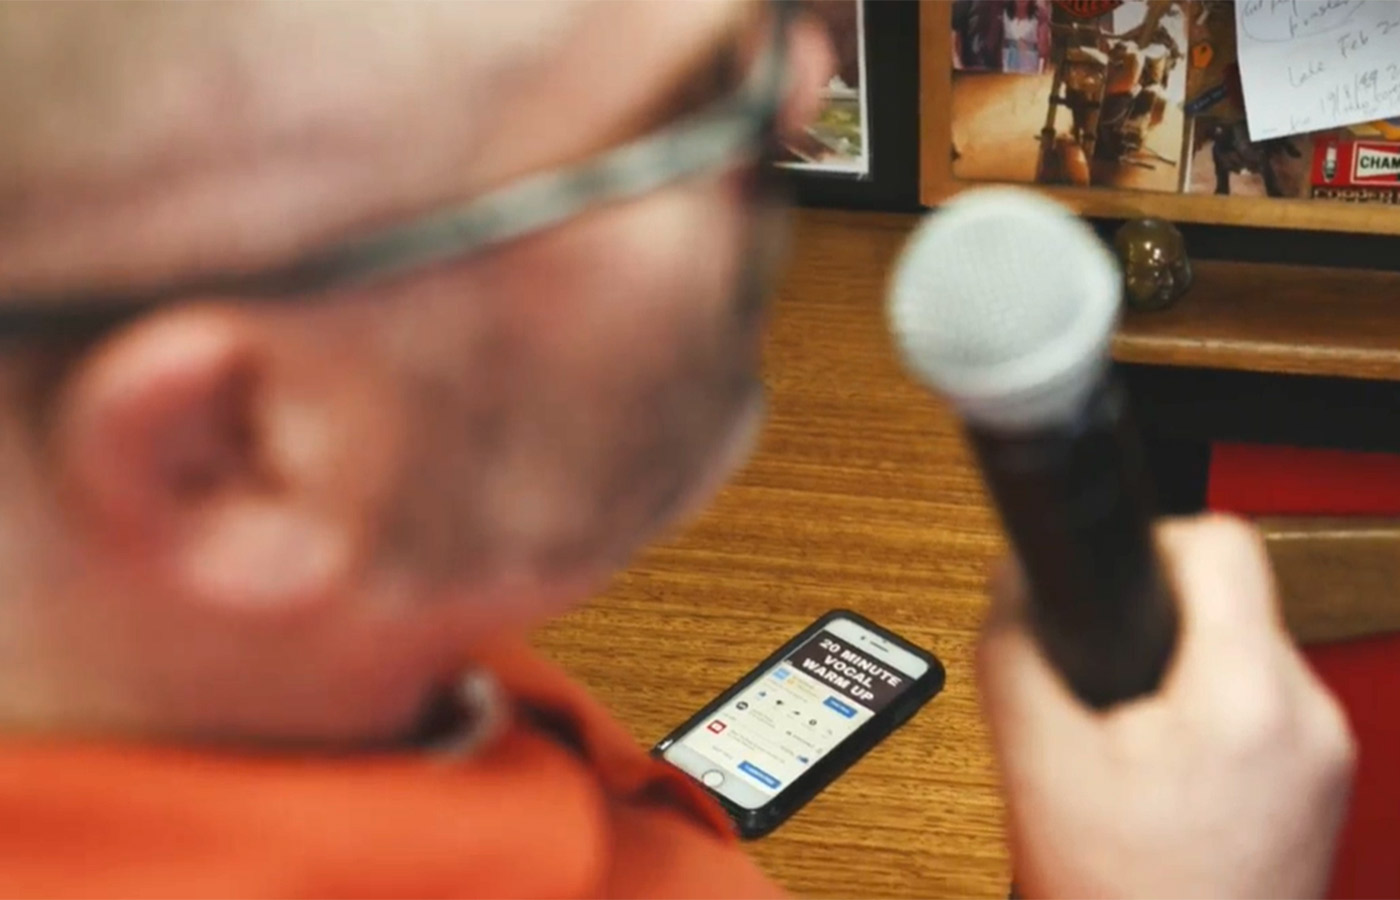 Osia recipient Adrian adjusts his device settings with an iPhone while he sings karaoke